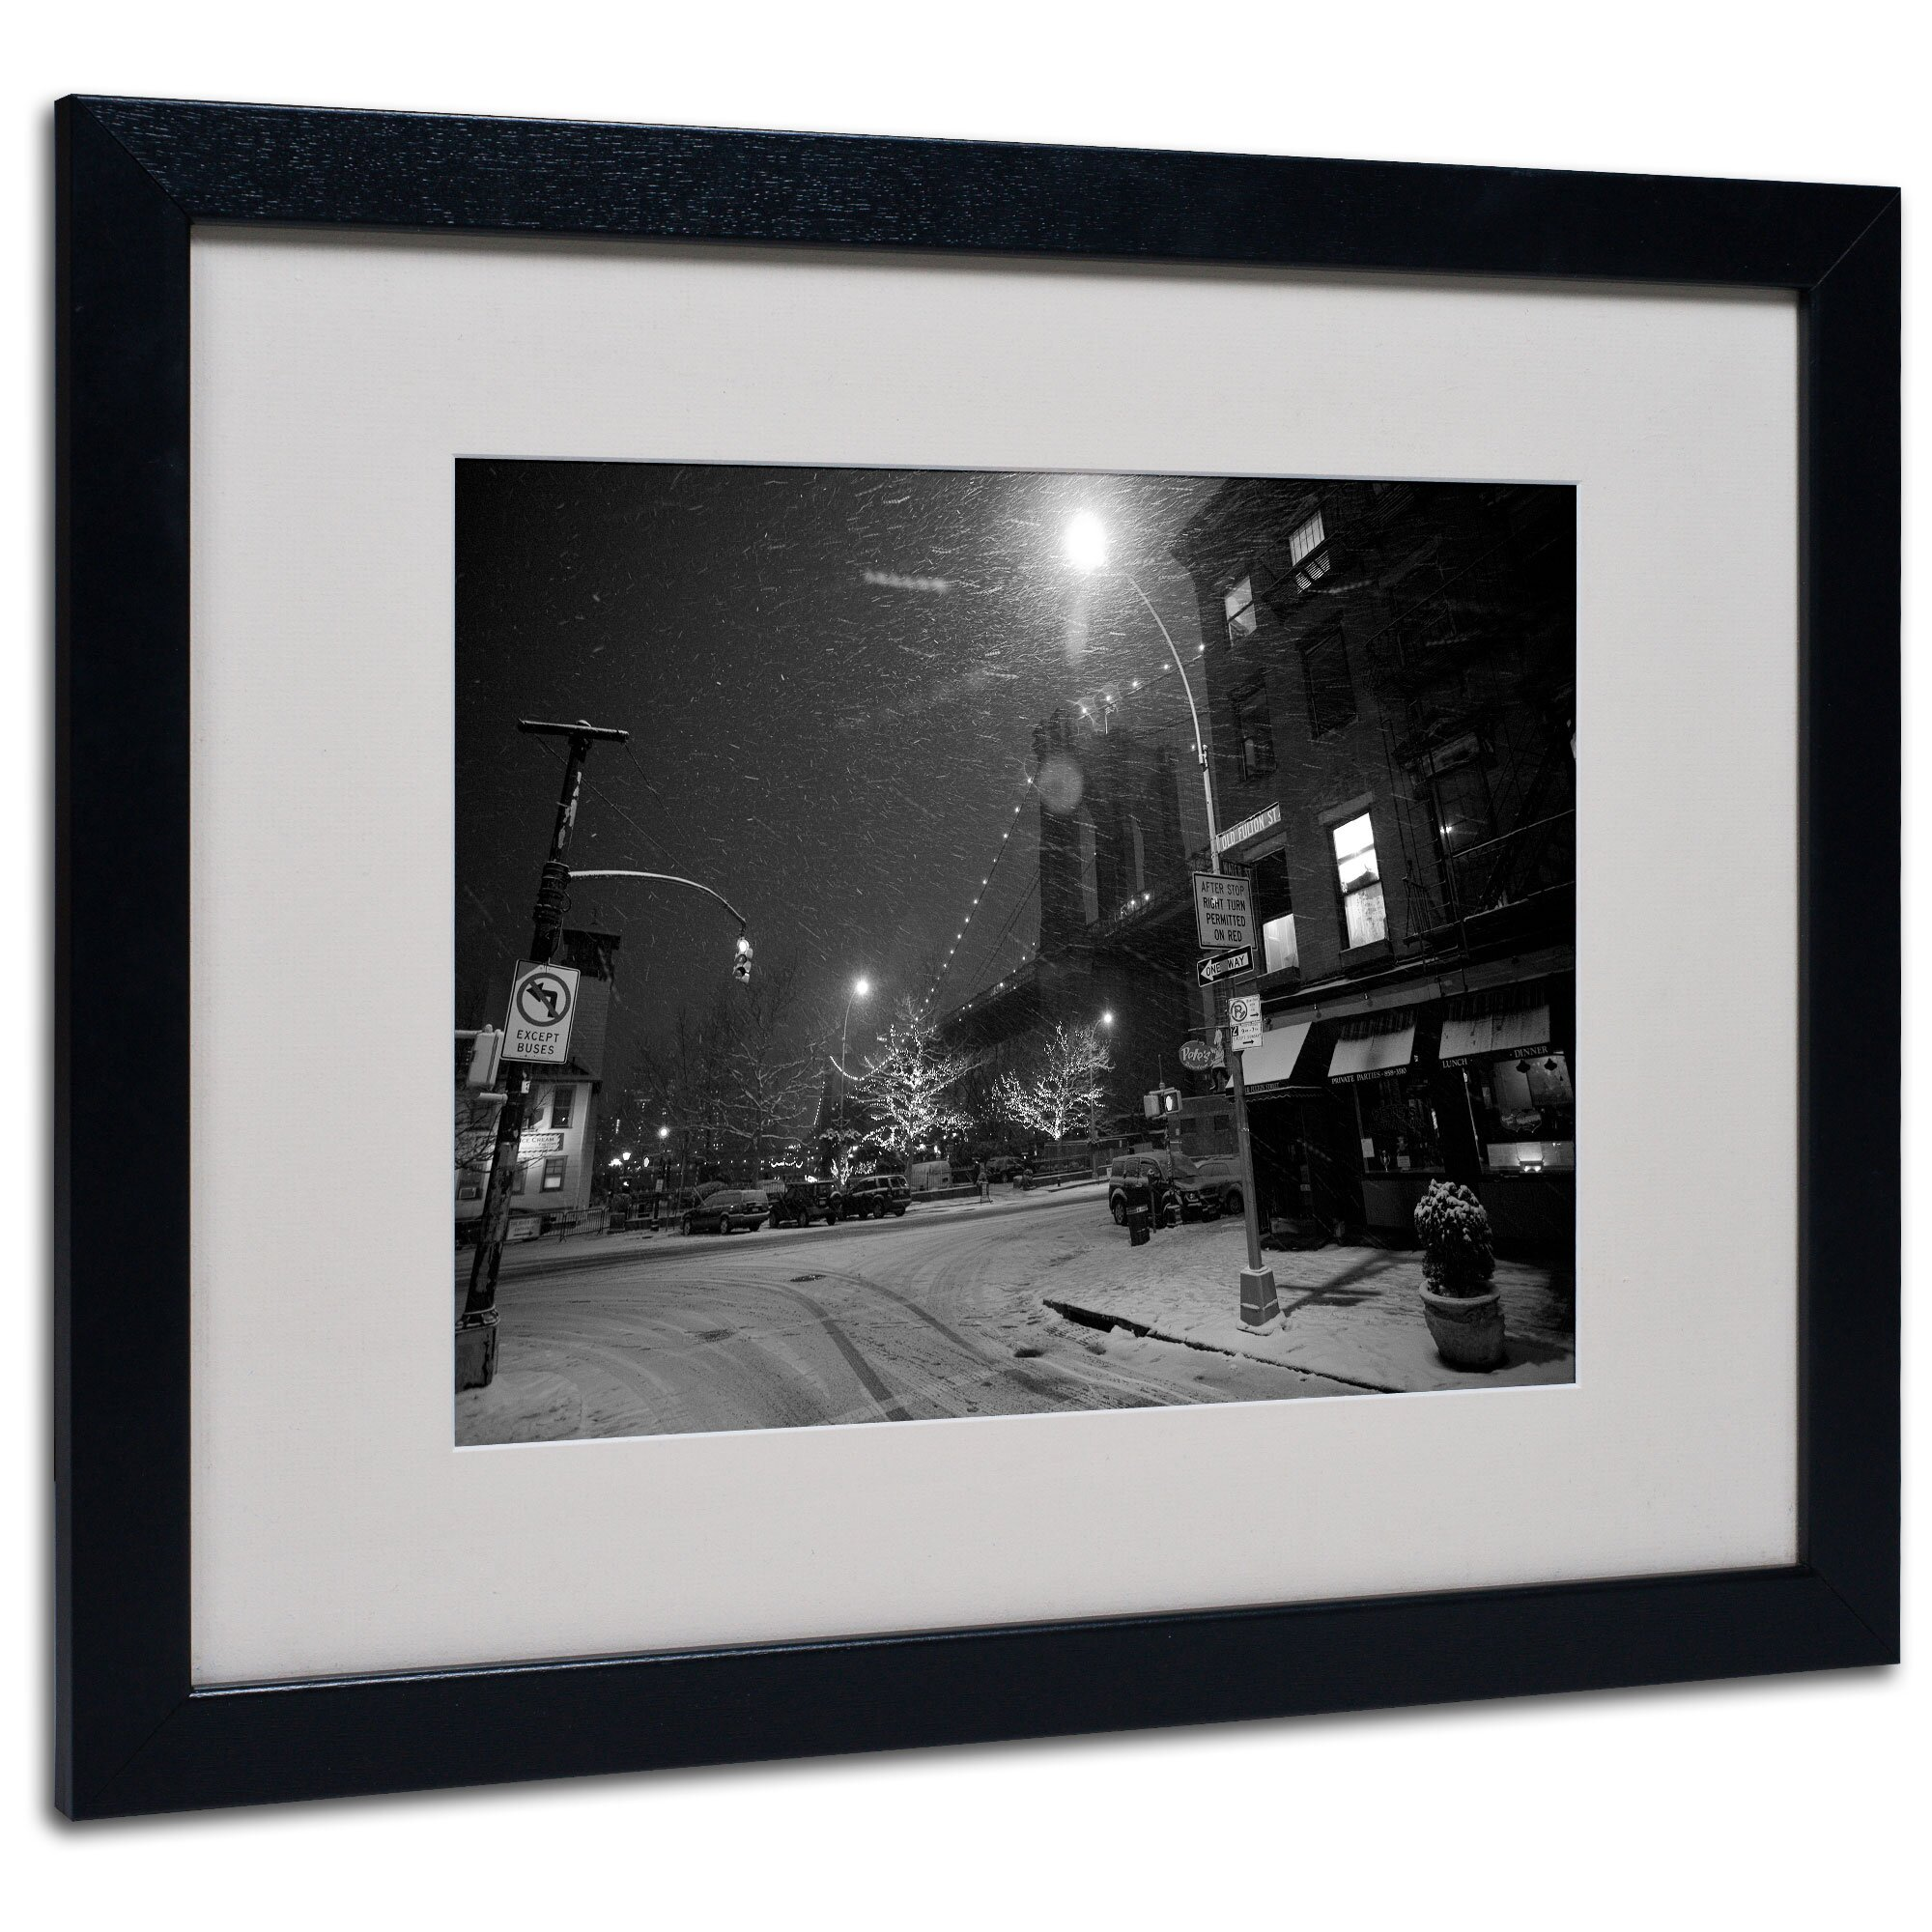 Trademark Art quotPetes by the Bridgequot by Yale Gurney Framed  : Trademark Fine Art Petes by the Bridge by Yale Gurney Framed Photographic Print from www.wayfair.com size 2000 x 2000 jpeg 495kB